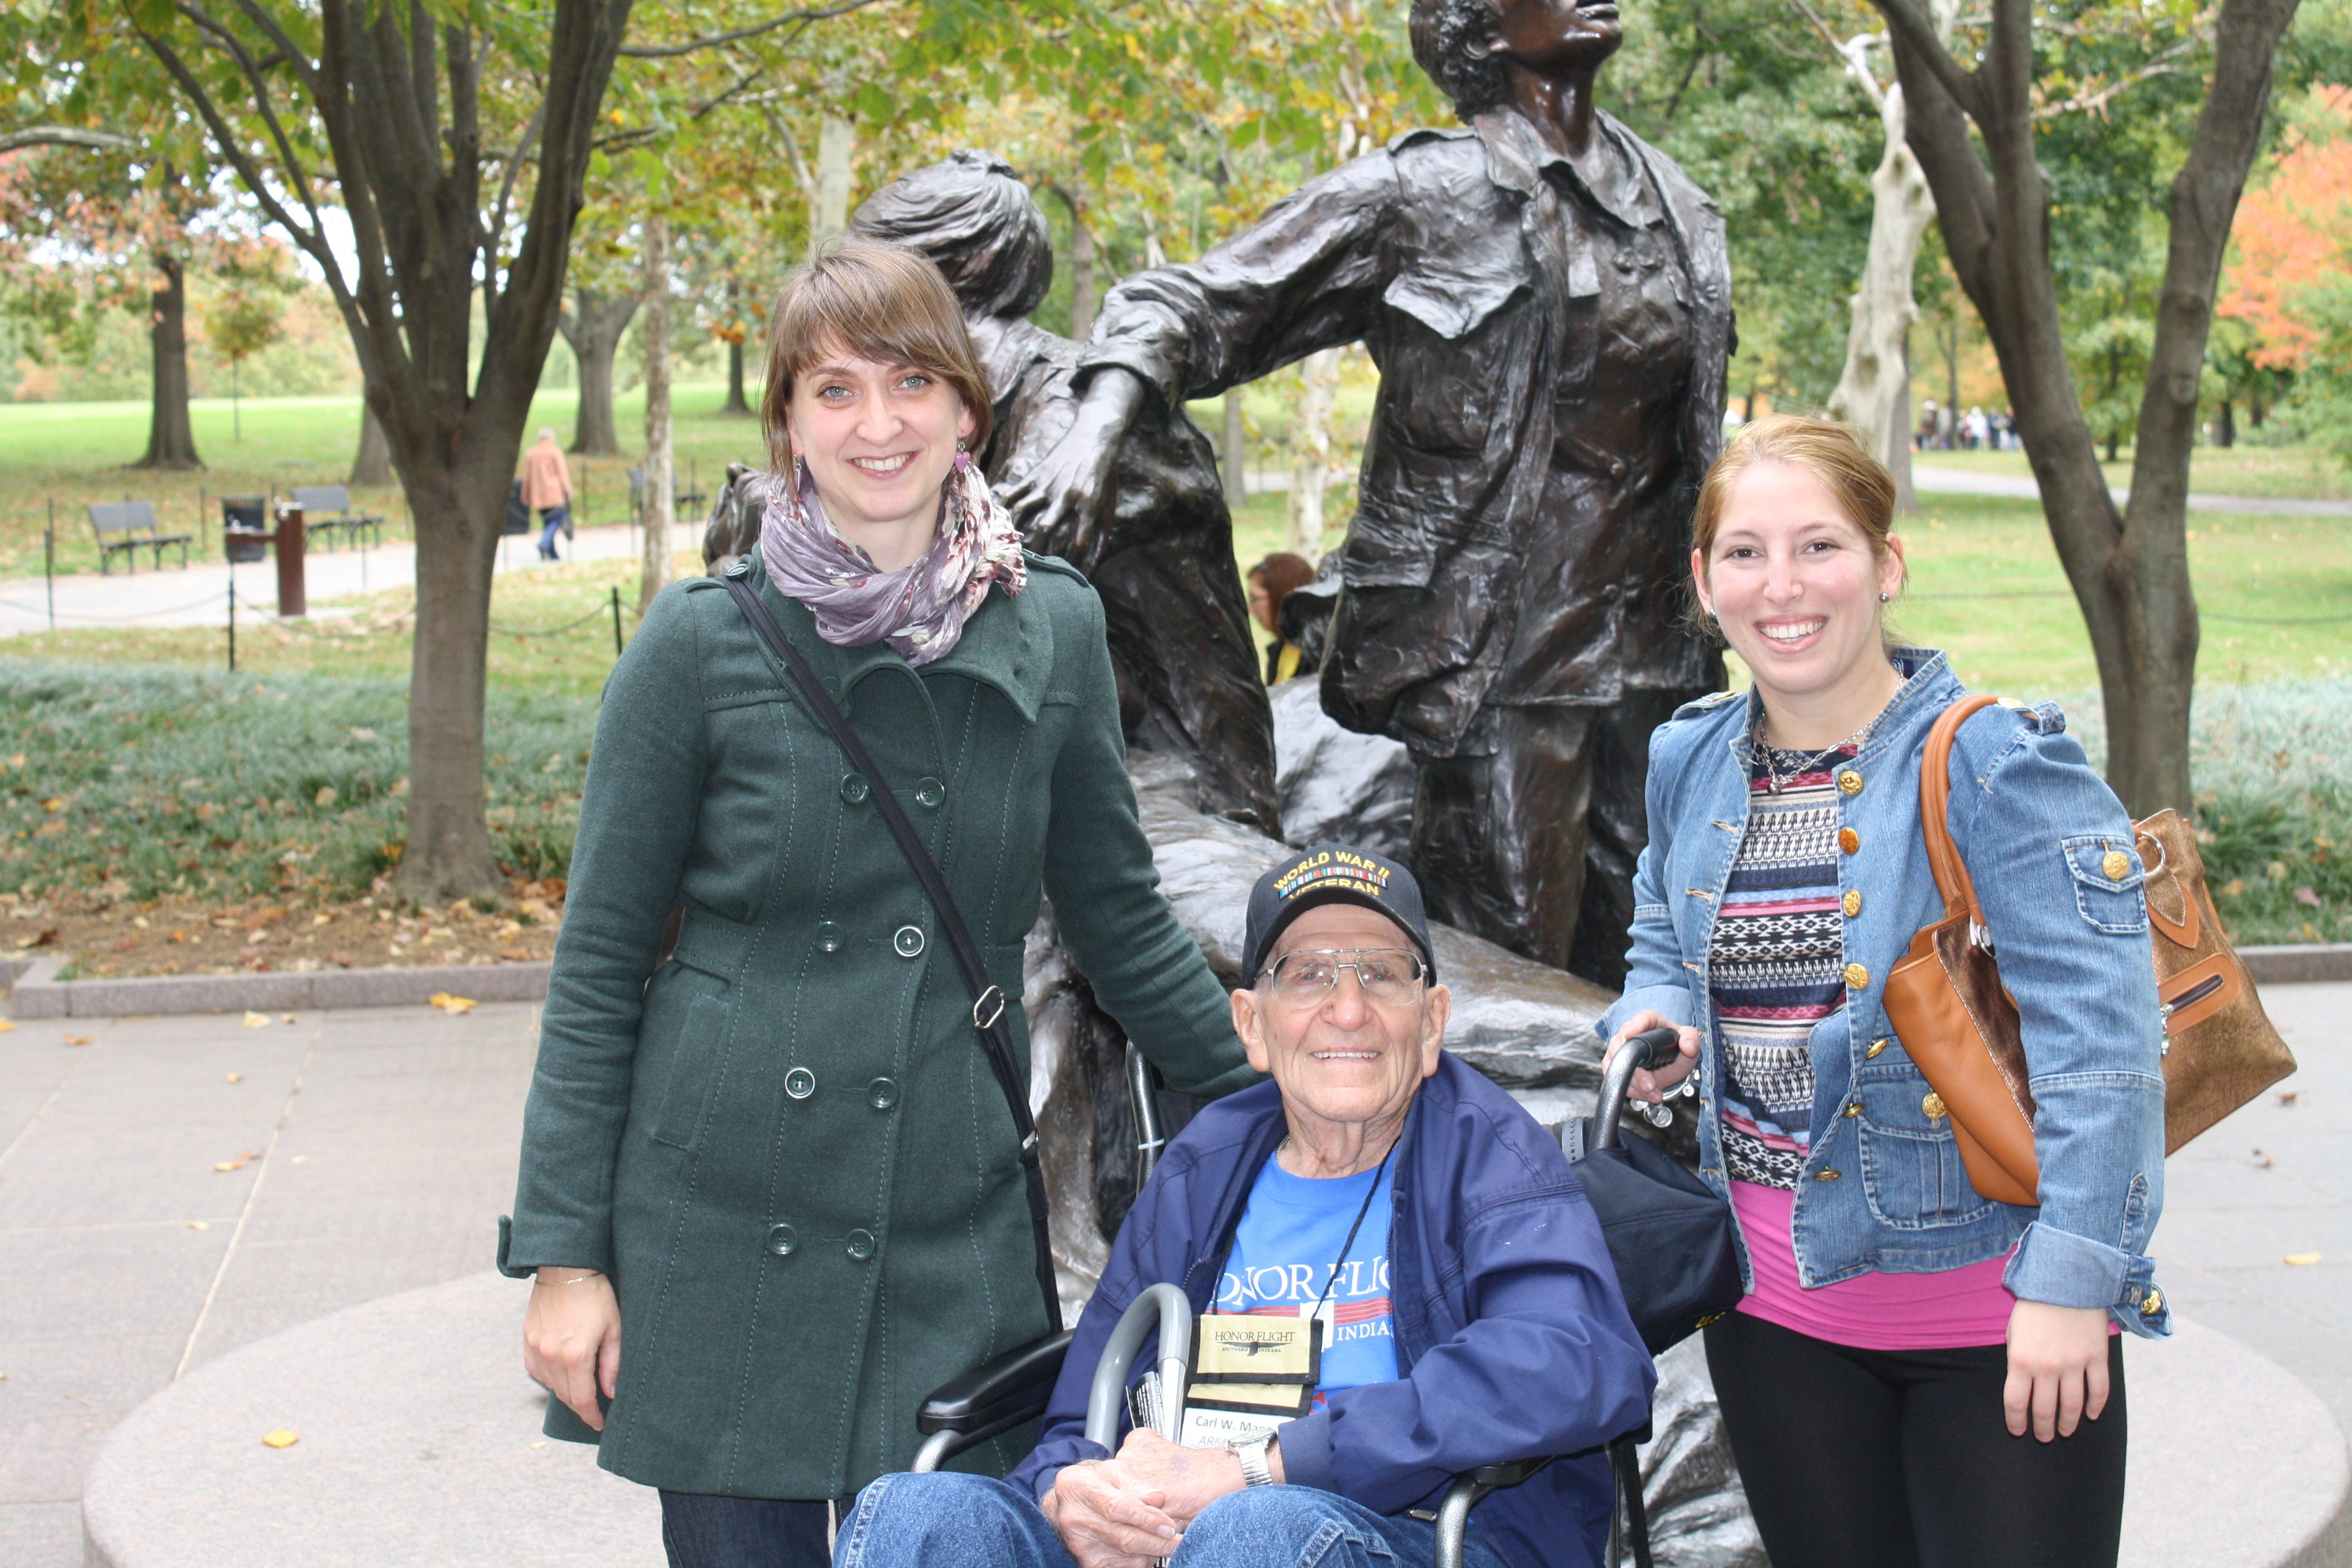 Carl Mann pictured at the Vietnam Women's Memorial. These two women are from Norway, where Mann helped liberate concentration camps.